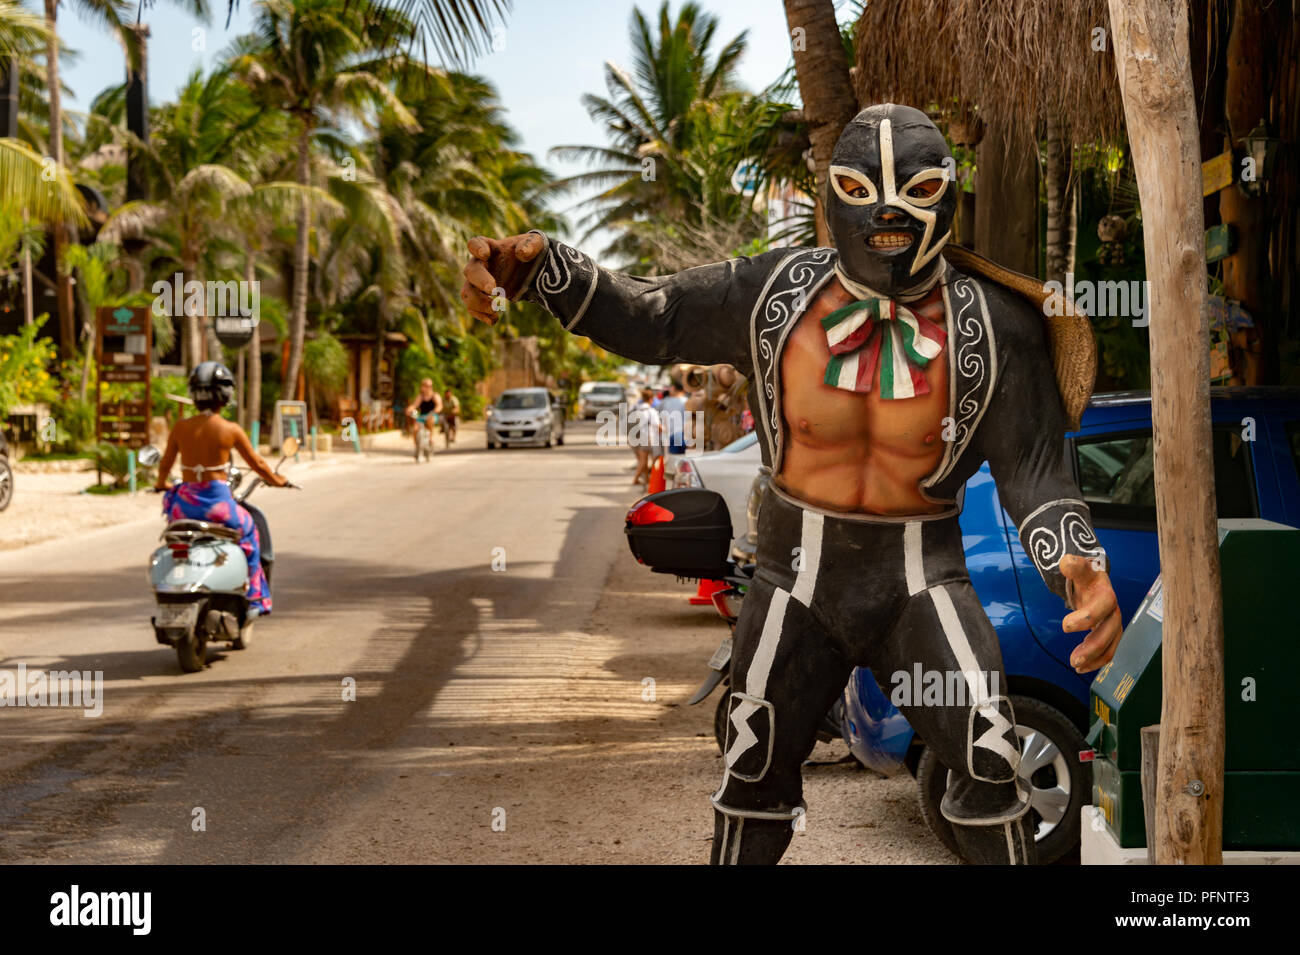 Tulum, Mexico - 14 August 2018: Mexican westler statue with traditional costume on Carretera Tulum Boca Paila road. - Stock Image